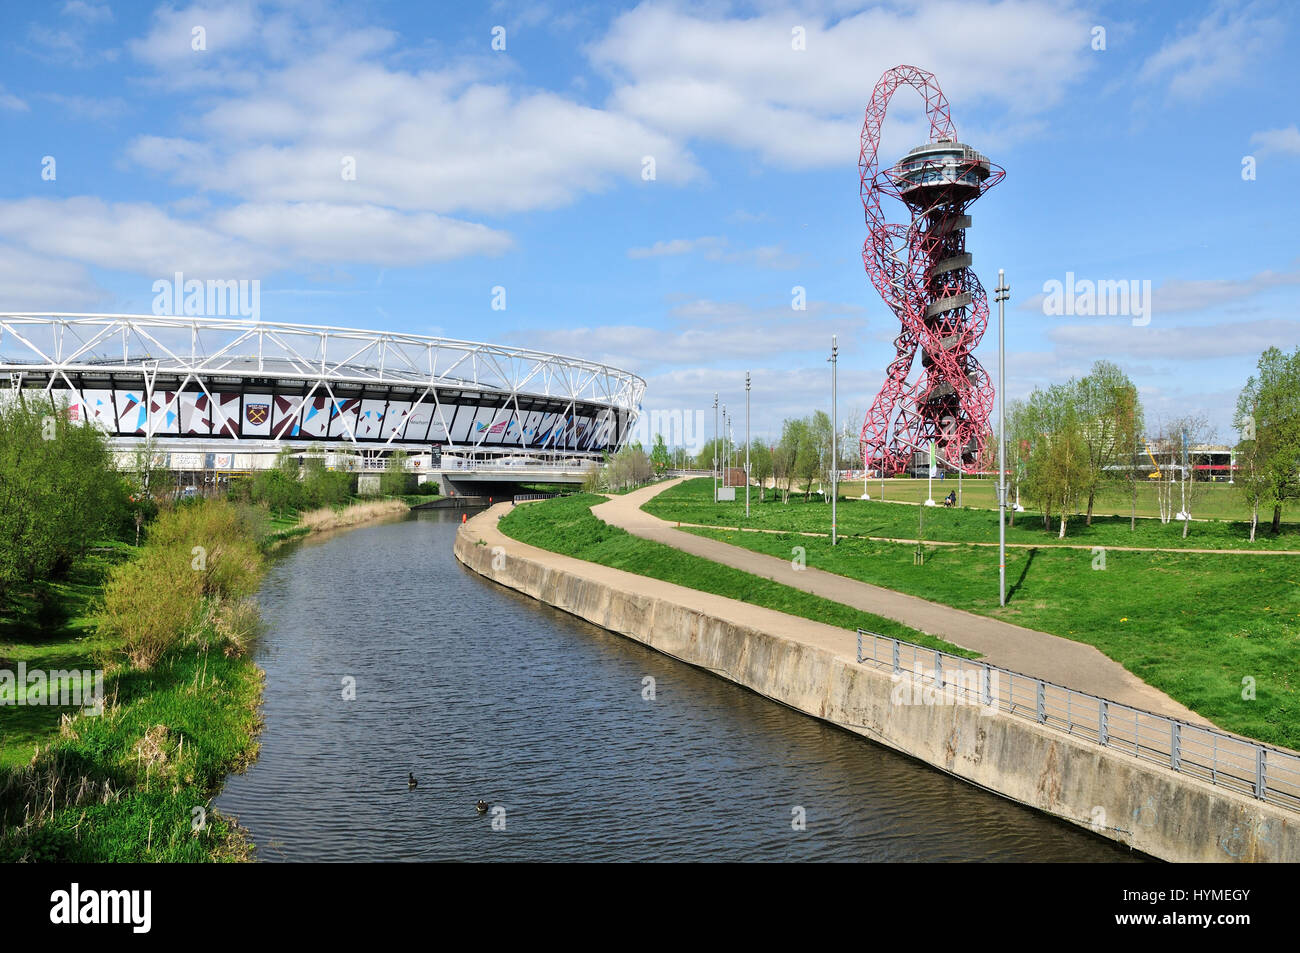 The London Stadium and City Mill River in the Queen Elizabeth Olympic Park at Stratford, East London UK - Stock Image